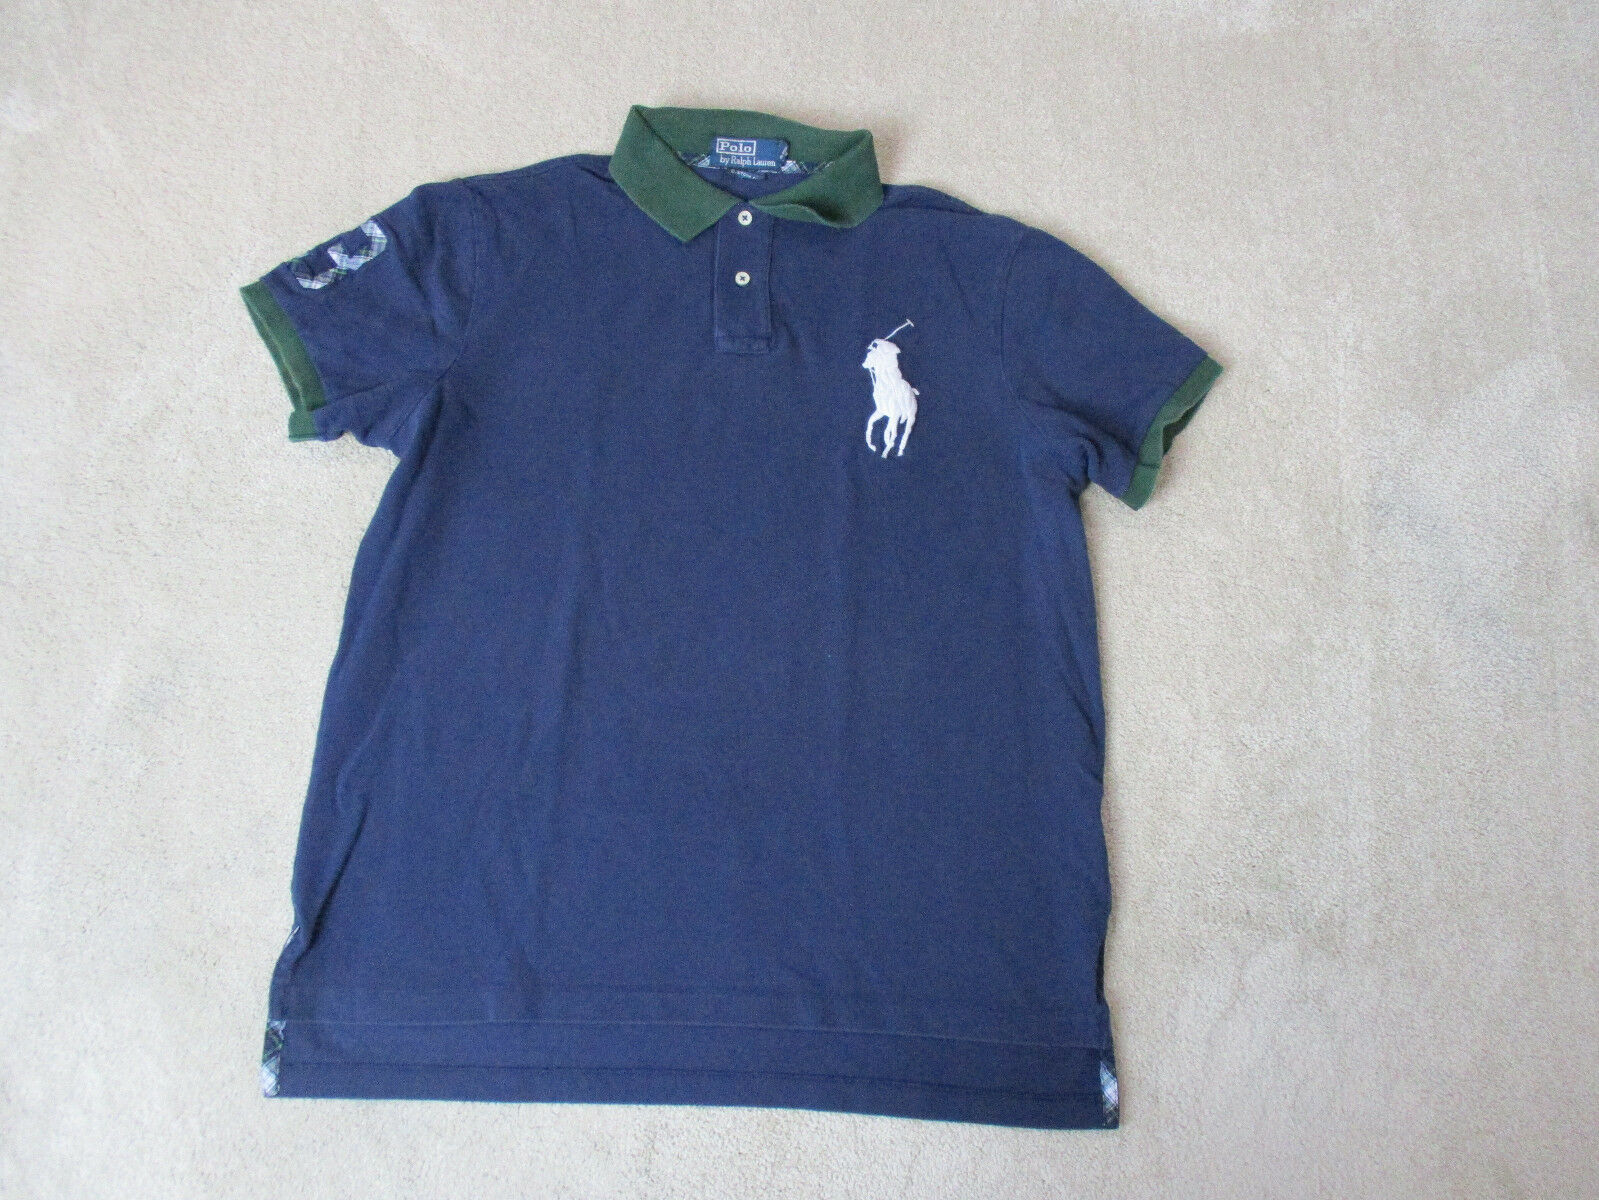 Ralph Lauren Polo Shirt Adult Large bluee Green Plaid Big Pony Rugby Casual Mens